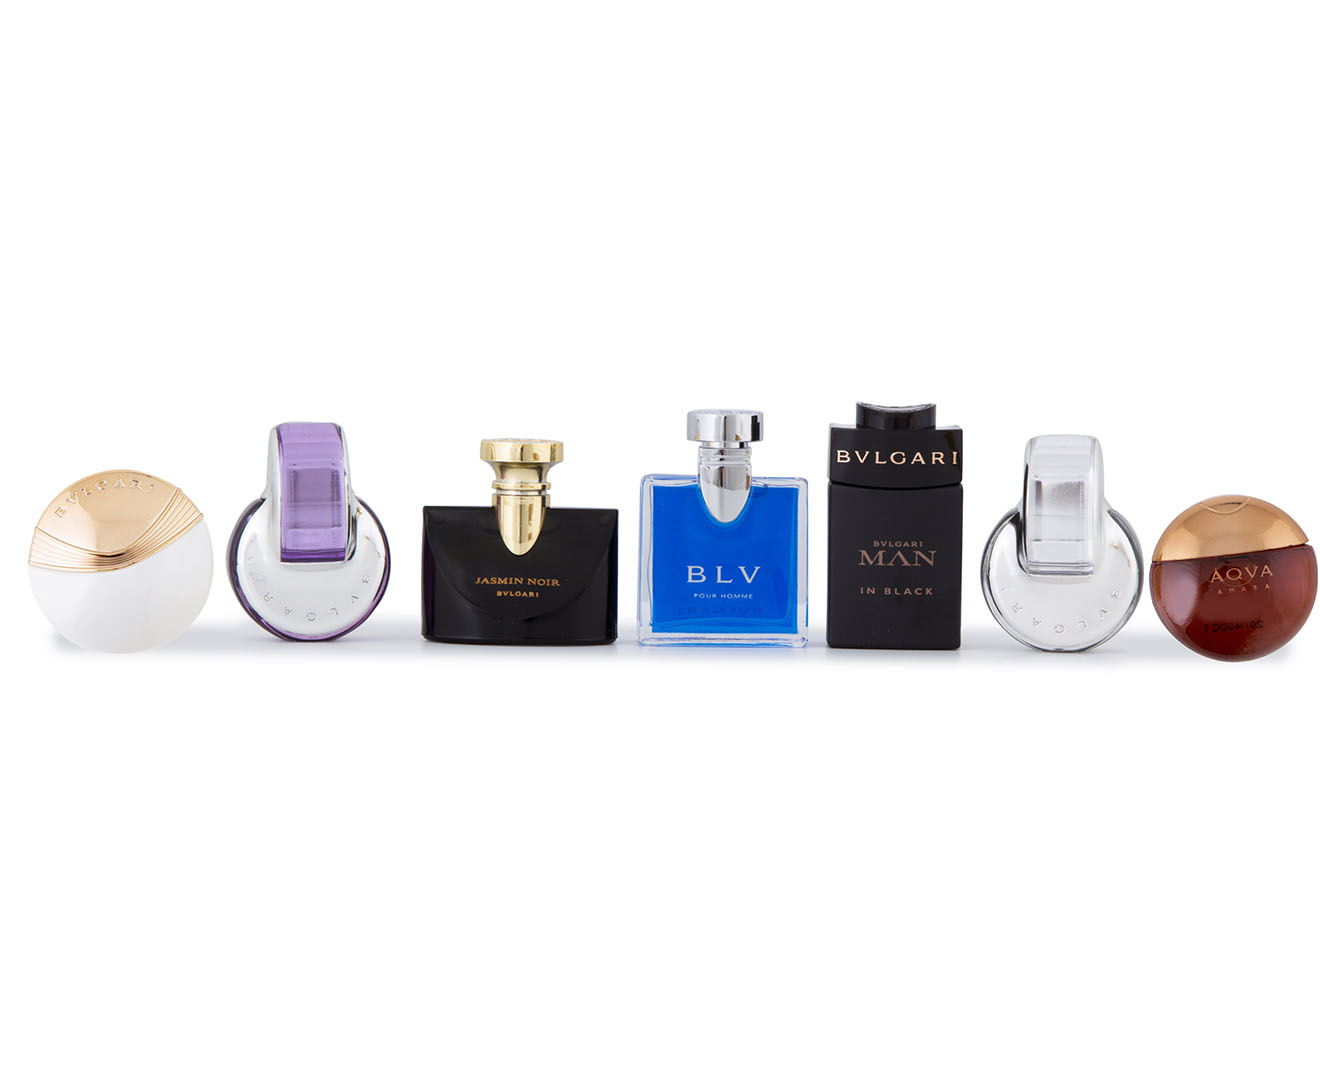 Bvlgari Iconic Miniature Collection 7-Piece Gift Set   Catch.com.au bbcf0ee0606